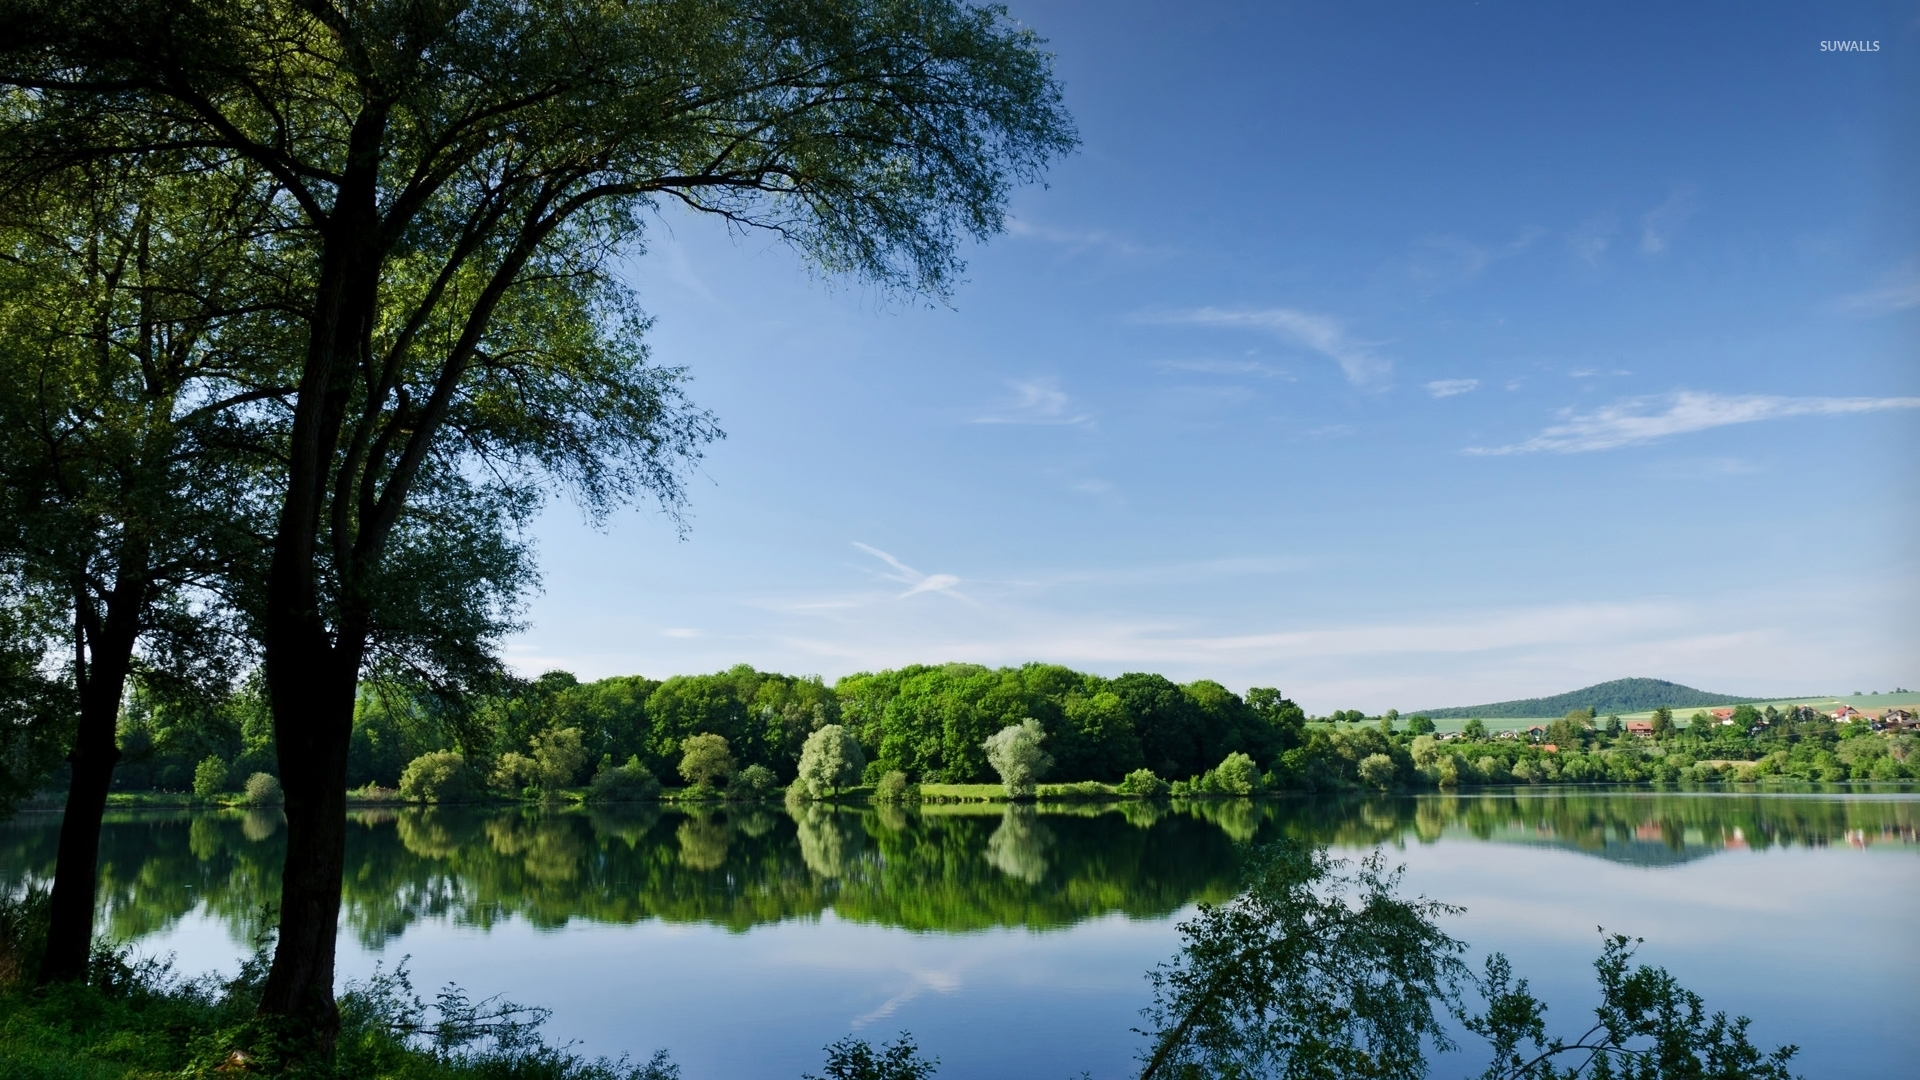 Summer forest by the lake wallpaper nature wallpapers for Summer lake